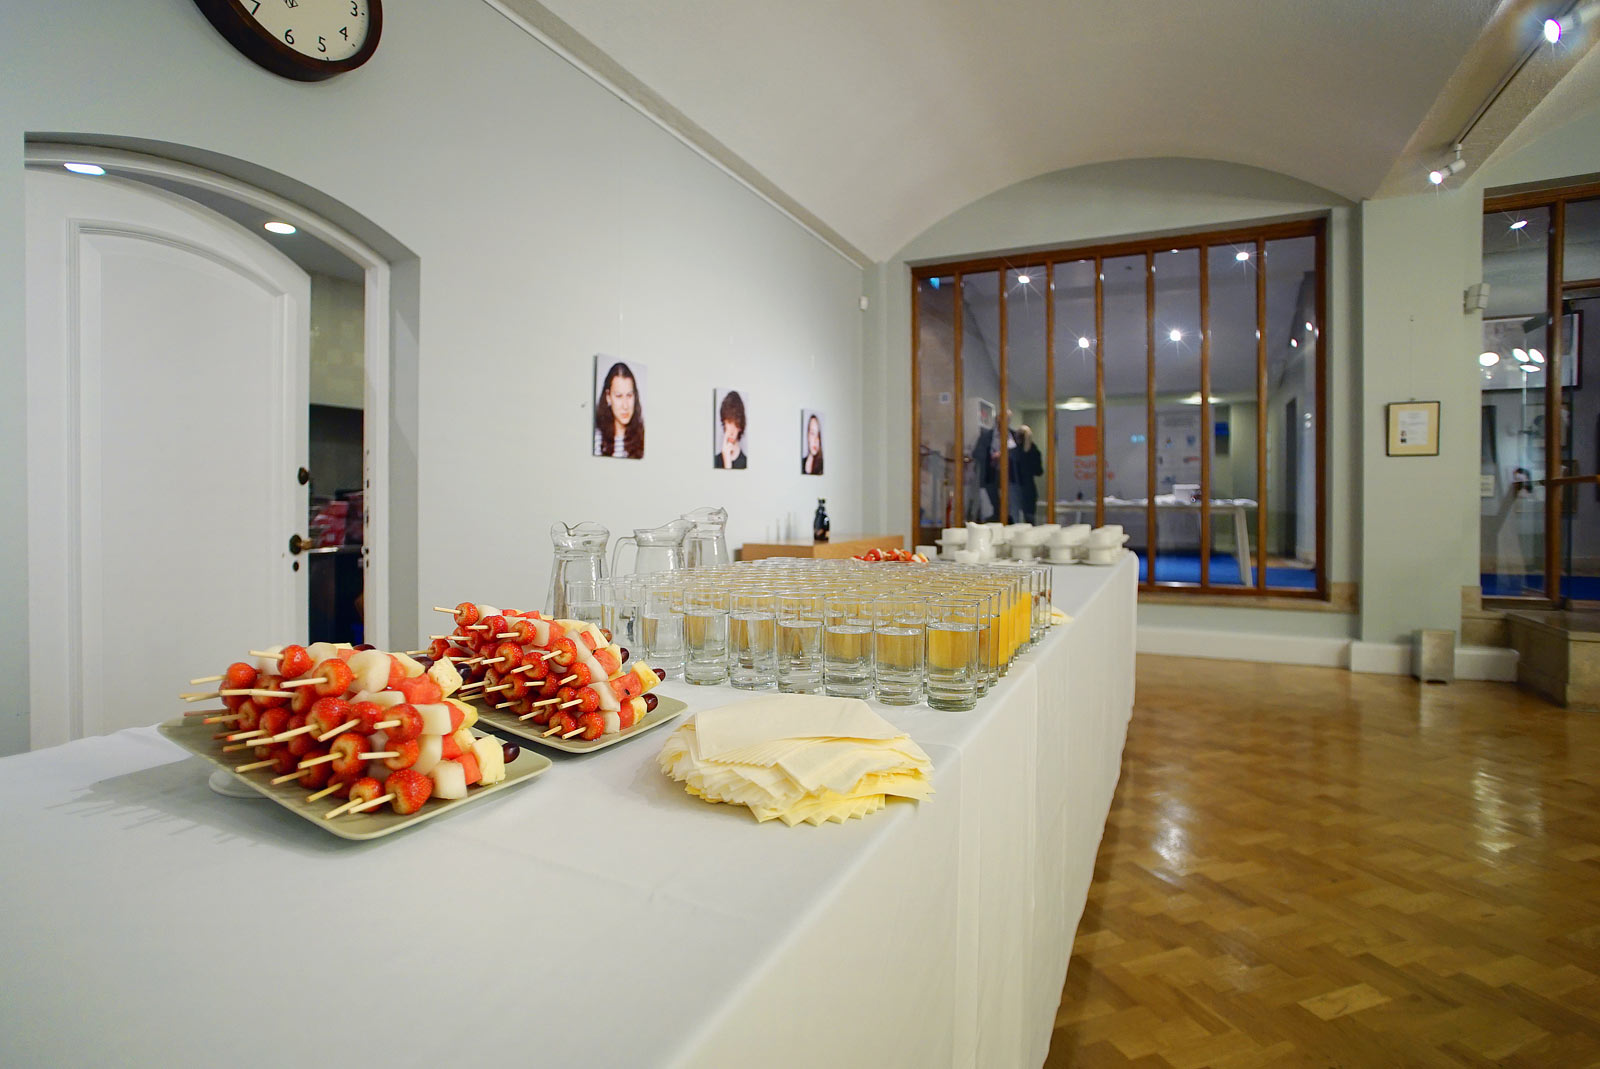 Catering service at London EC2 conference venue The Van Gogh Reception Room